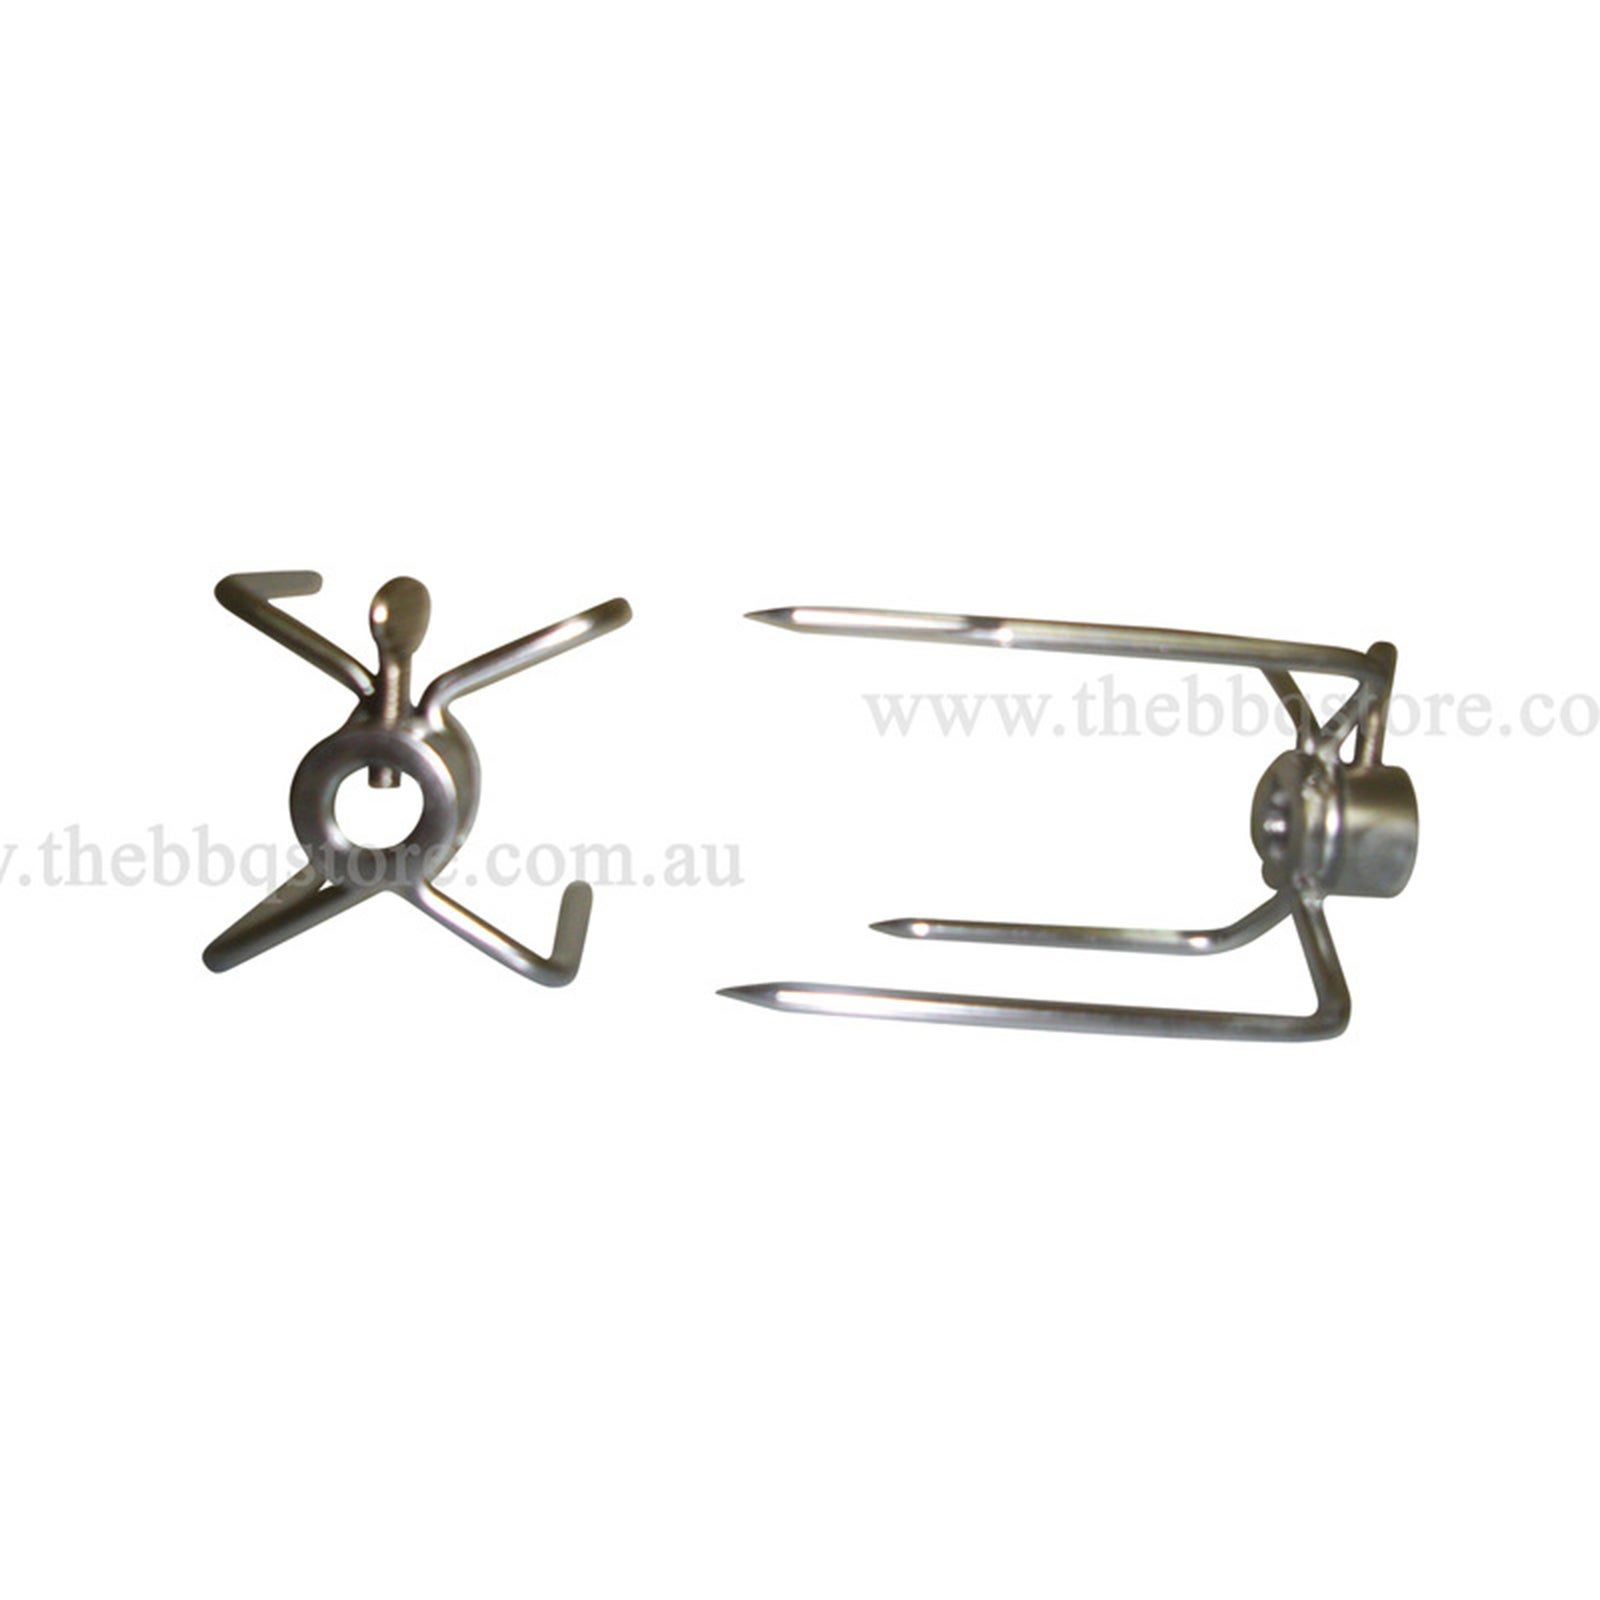 New S//S Long 2 Prong Forks for Rotisserie BBQ Spit Set of 2 suit 22mm Round S